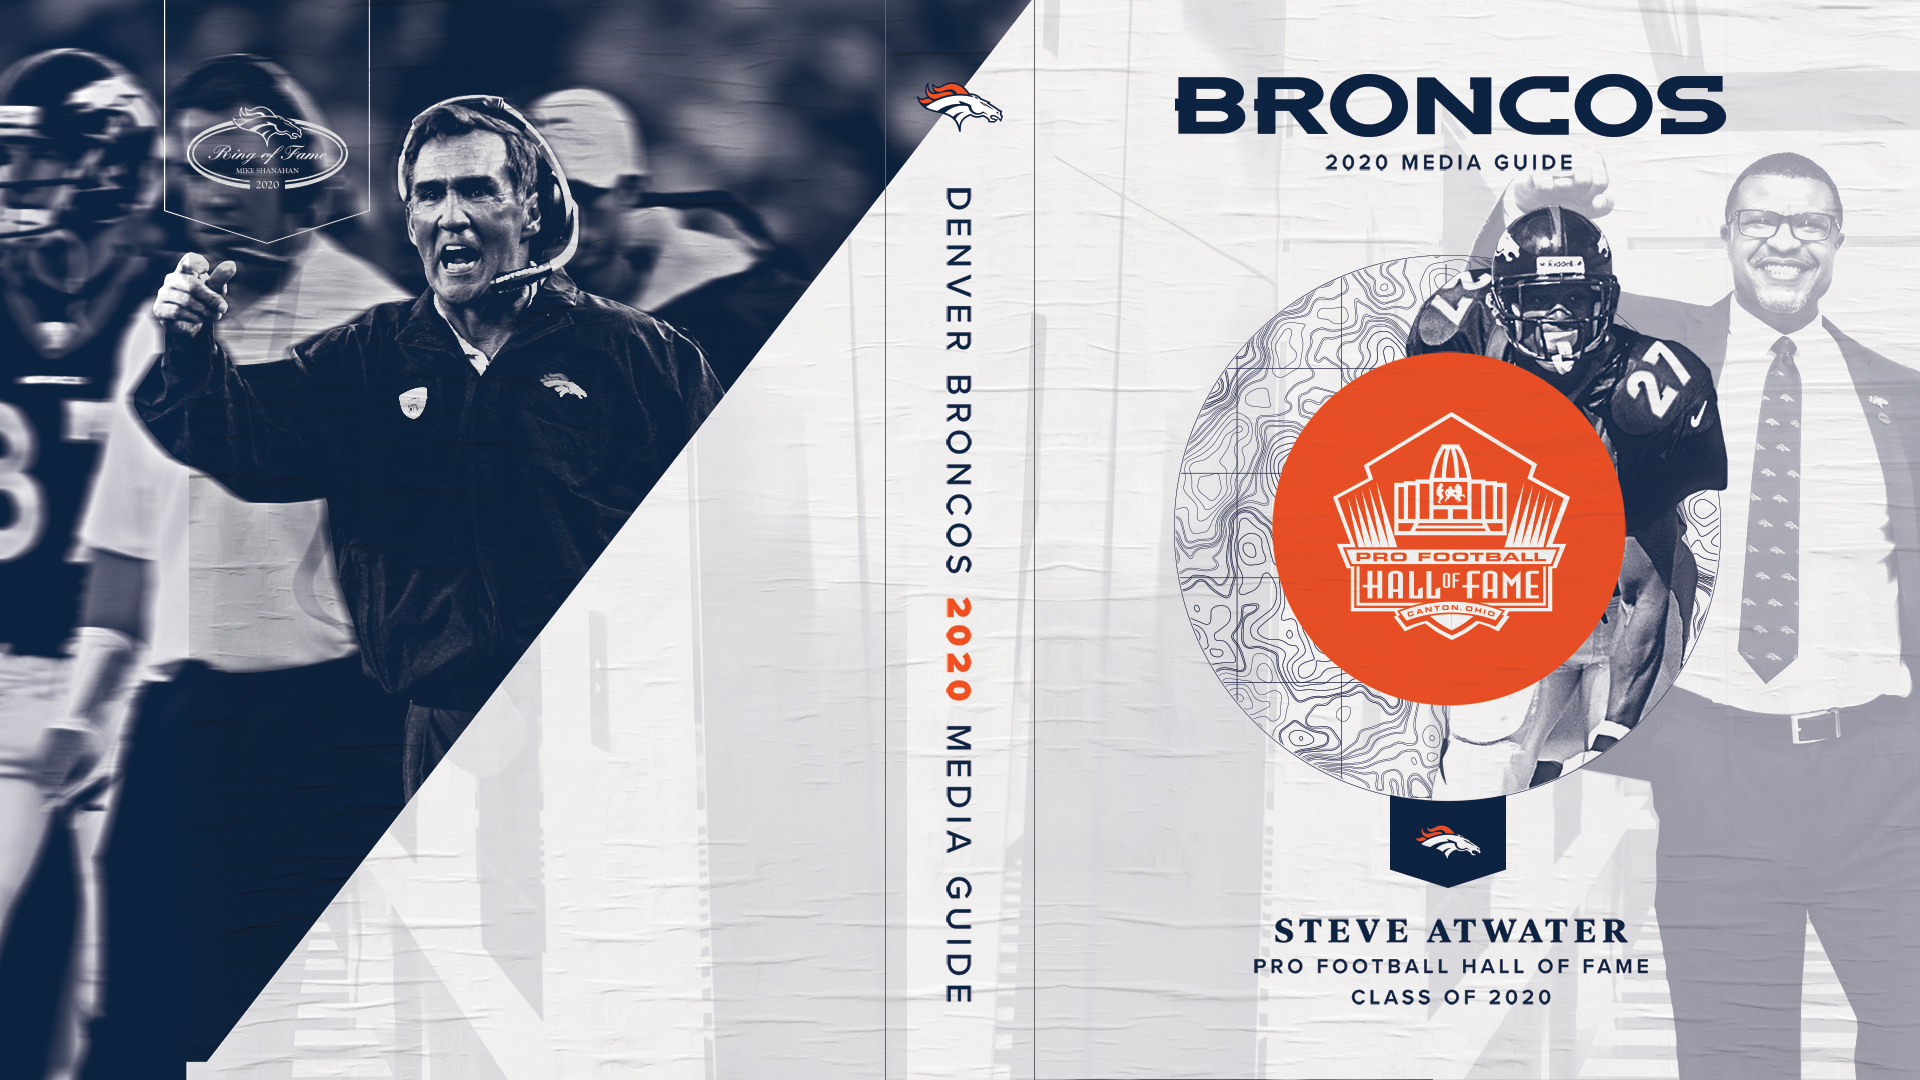 Denver Broncos 2020 Media Guide